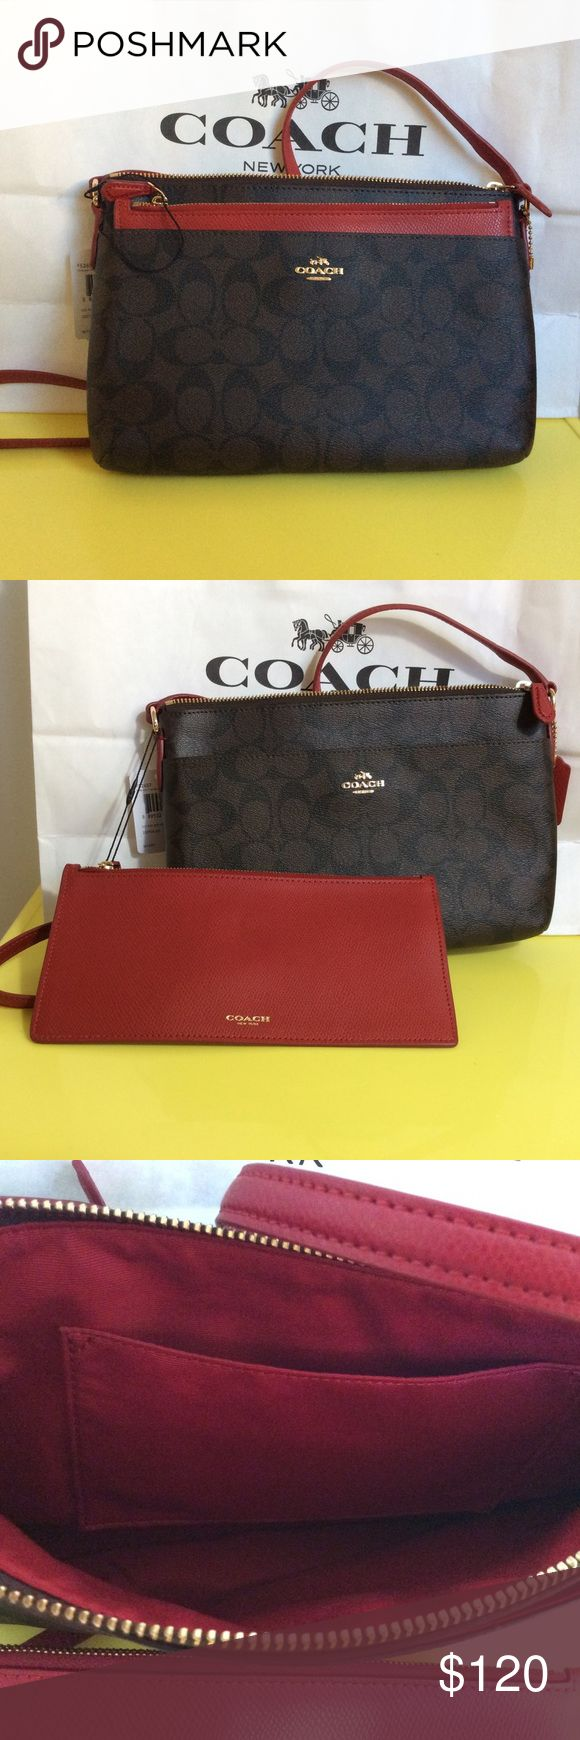 "Coach Signature Crossbody Bag Detachable Pochette 100% Authentic. Brand new with tag. Comes with detachable red clutch. Adjustable strap. Measurements: 10"" L x 1.5 "" W x 7"" H Coach Bags Crossbody Bags"